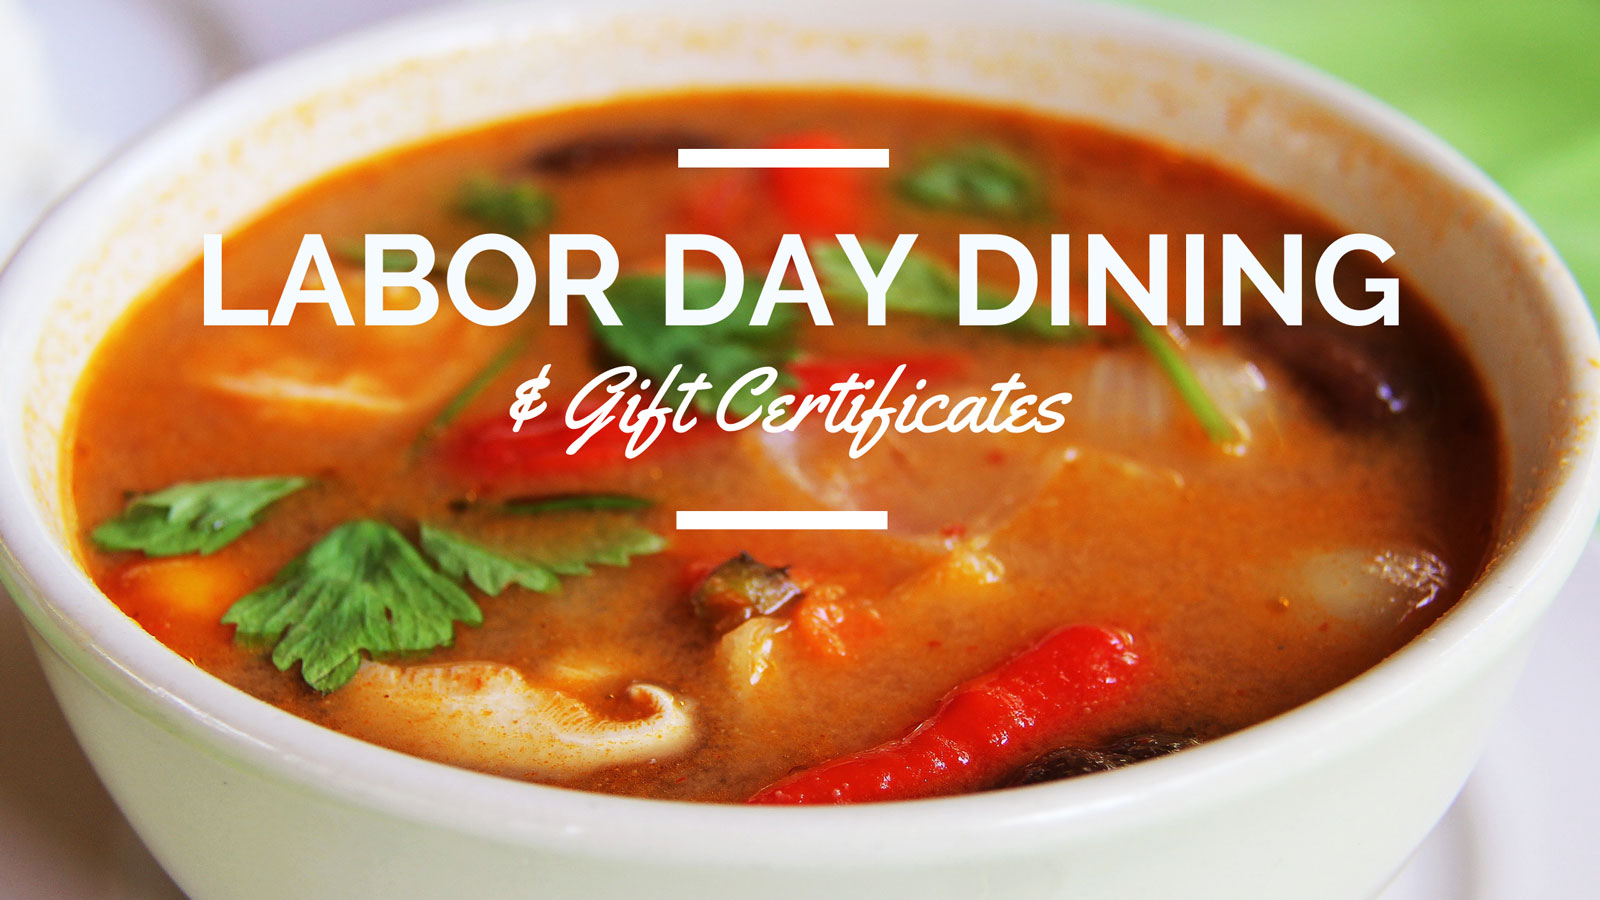 Labor Day Dining and Gift Certificates